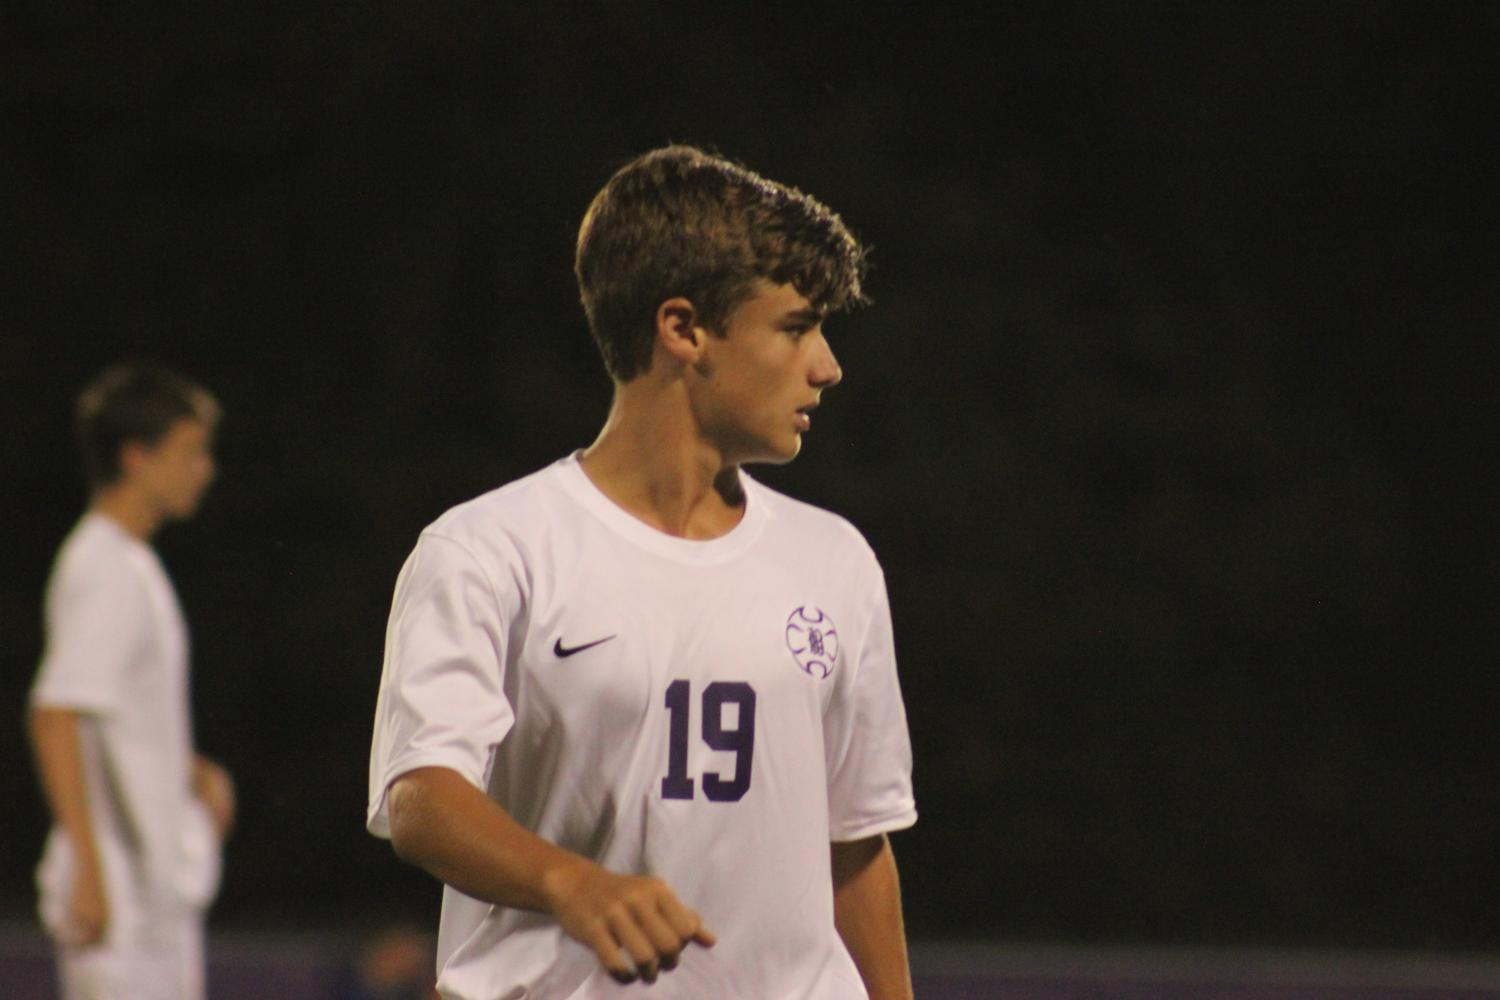 Boys' Soccer mid-season update